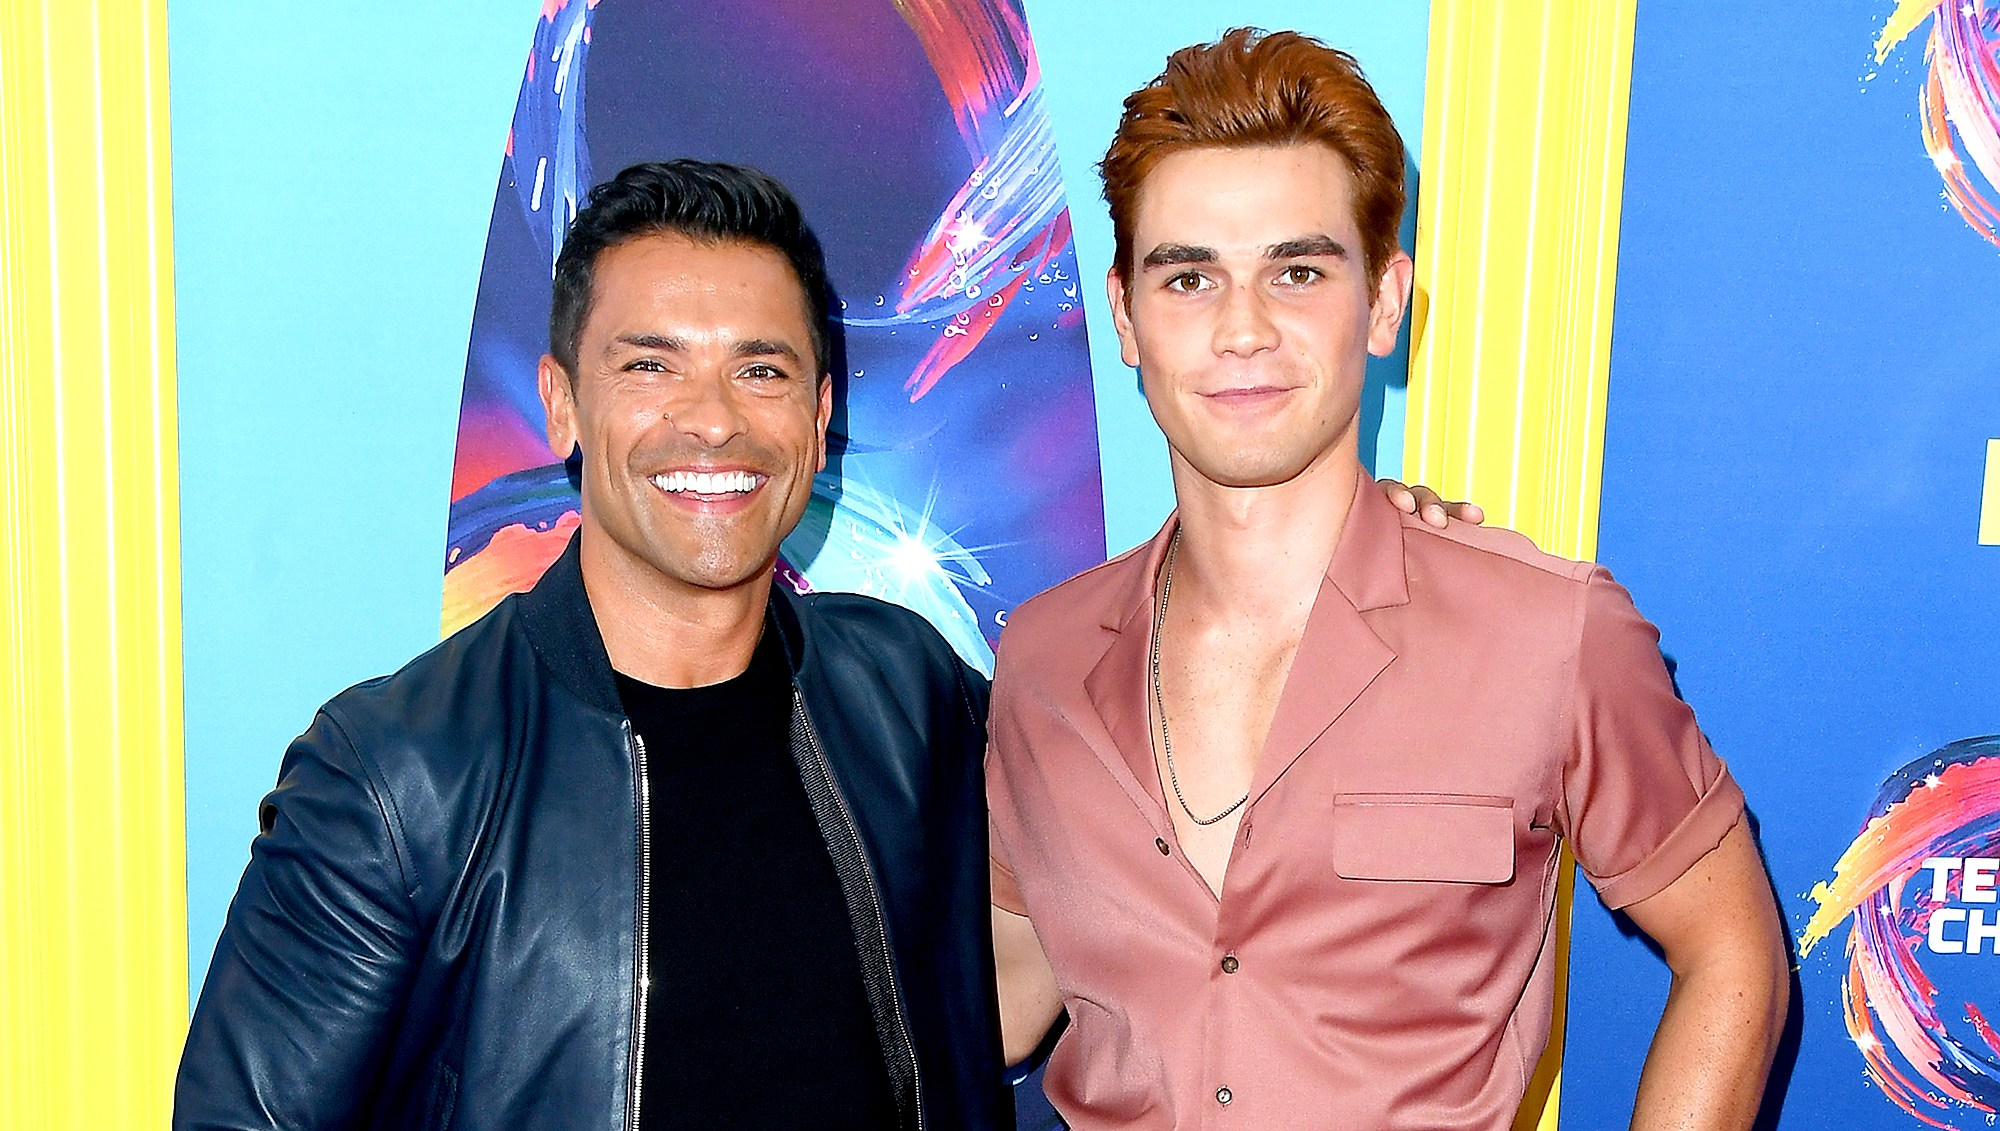 Mark-Consuelos-Trolls-KJ-Apa-With-His-Insanely-Ripped-Abs